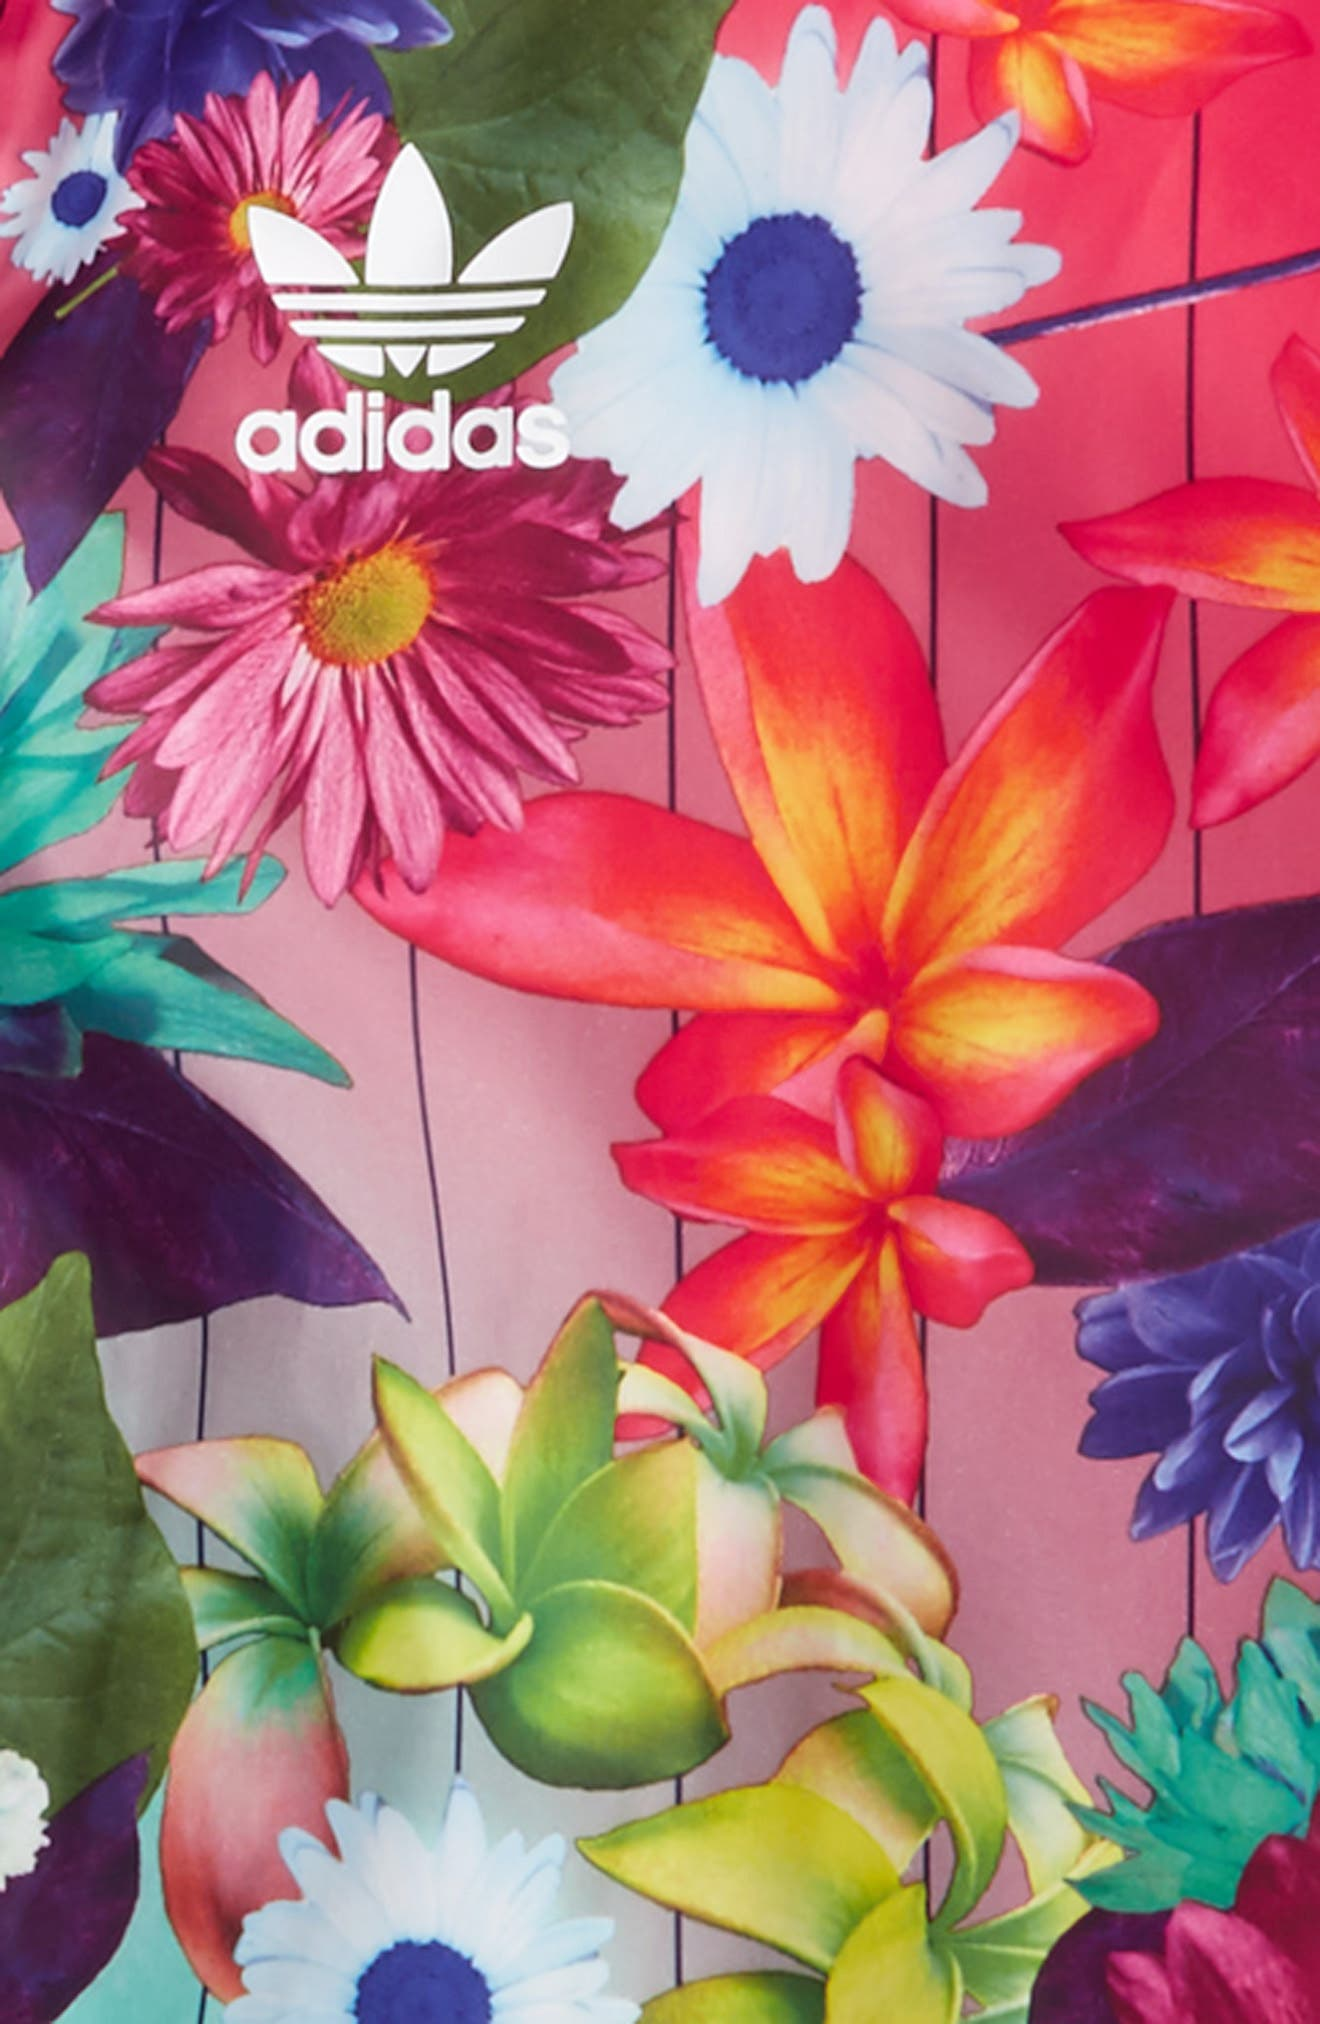 adidas Graphic Windbreaker Jacket,                             Alternate thumbnail 2, color,                             650